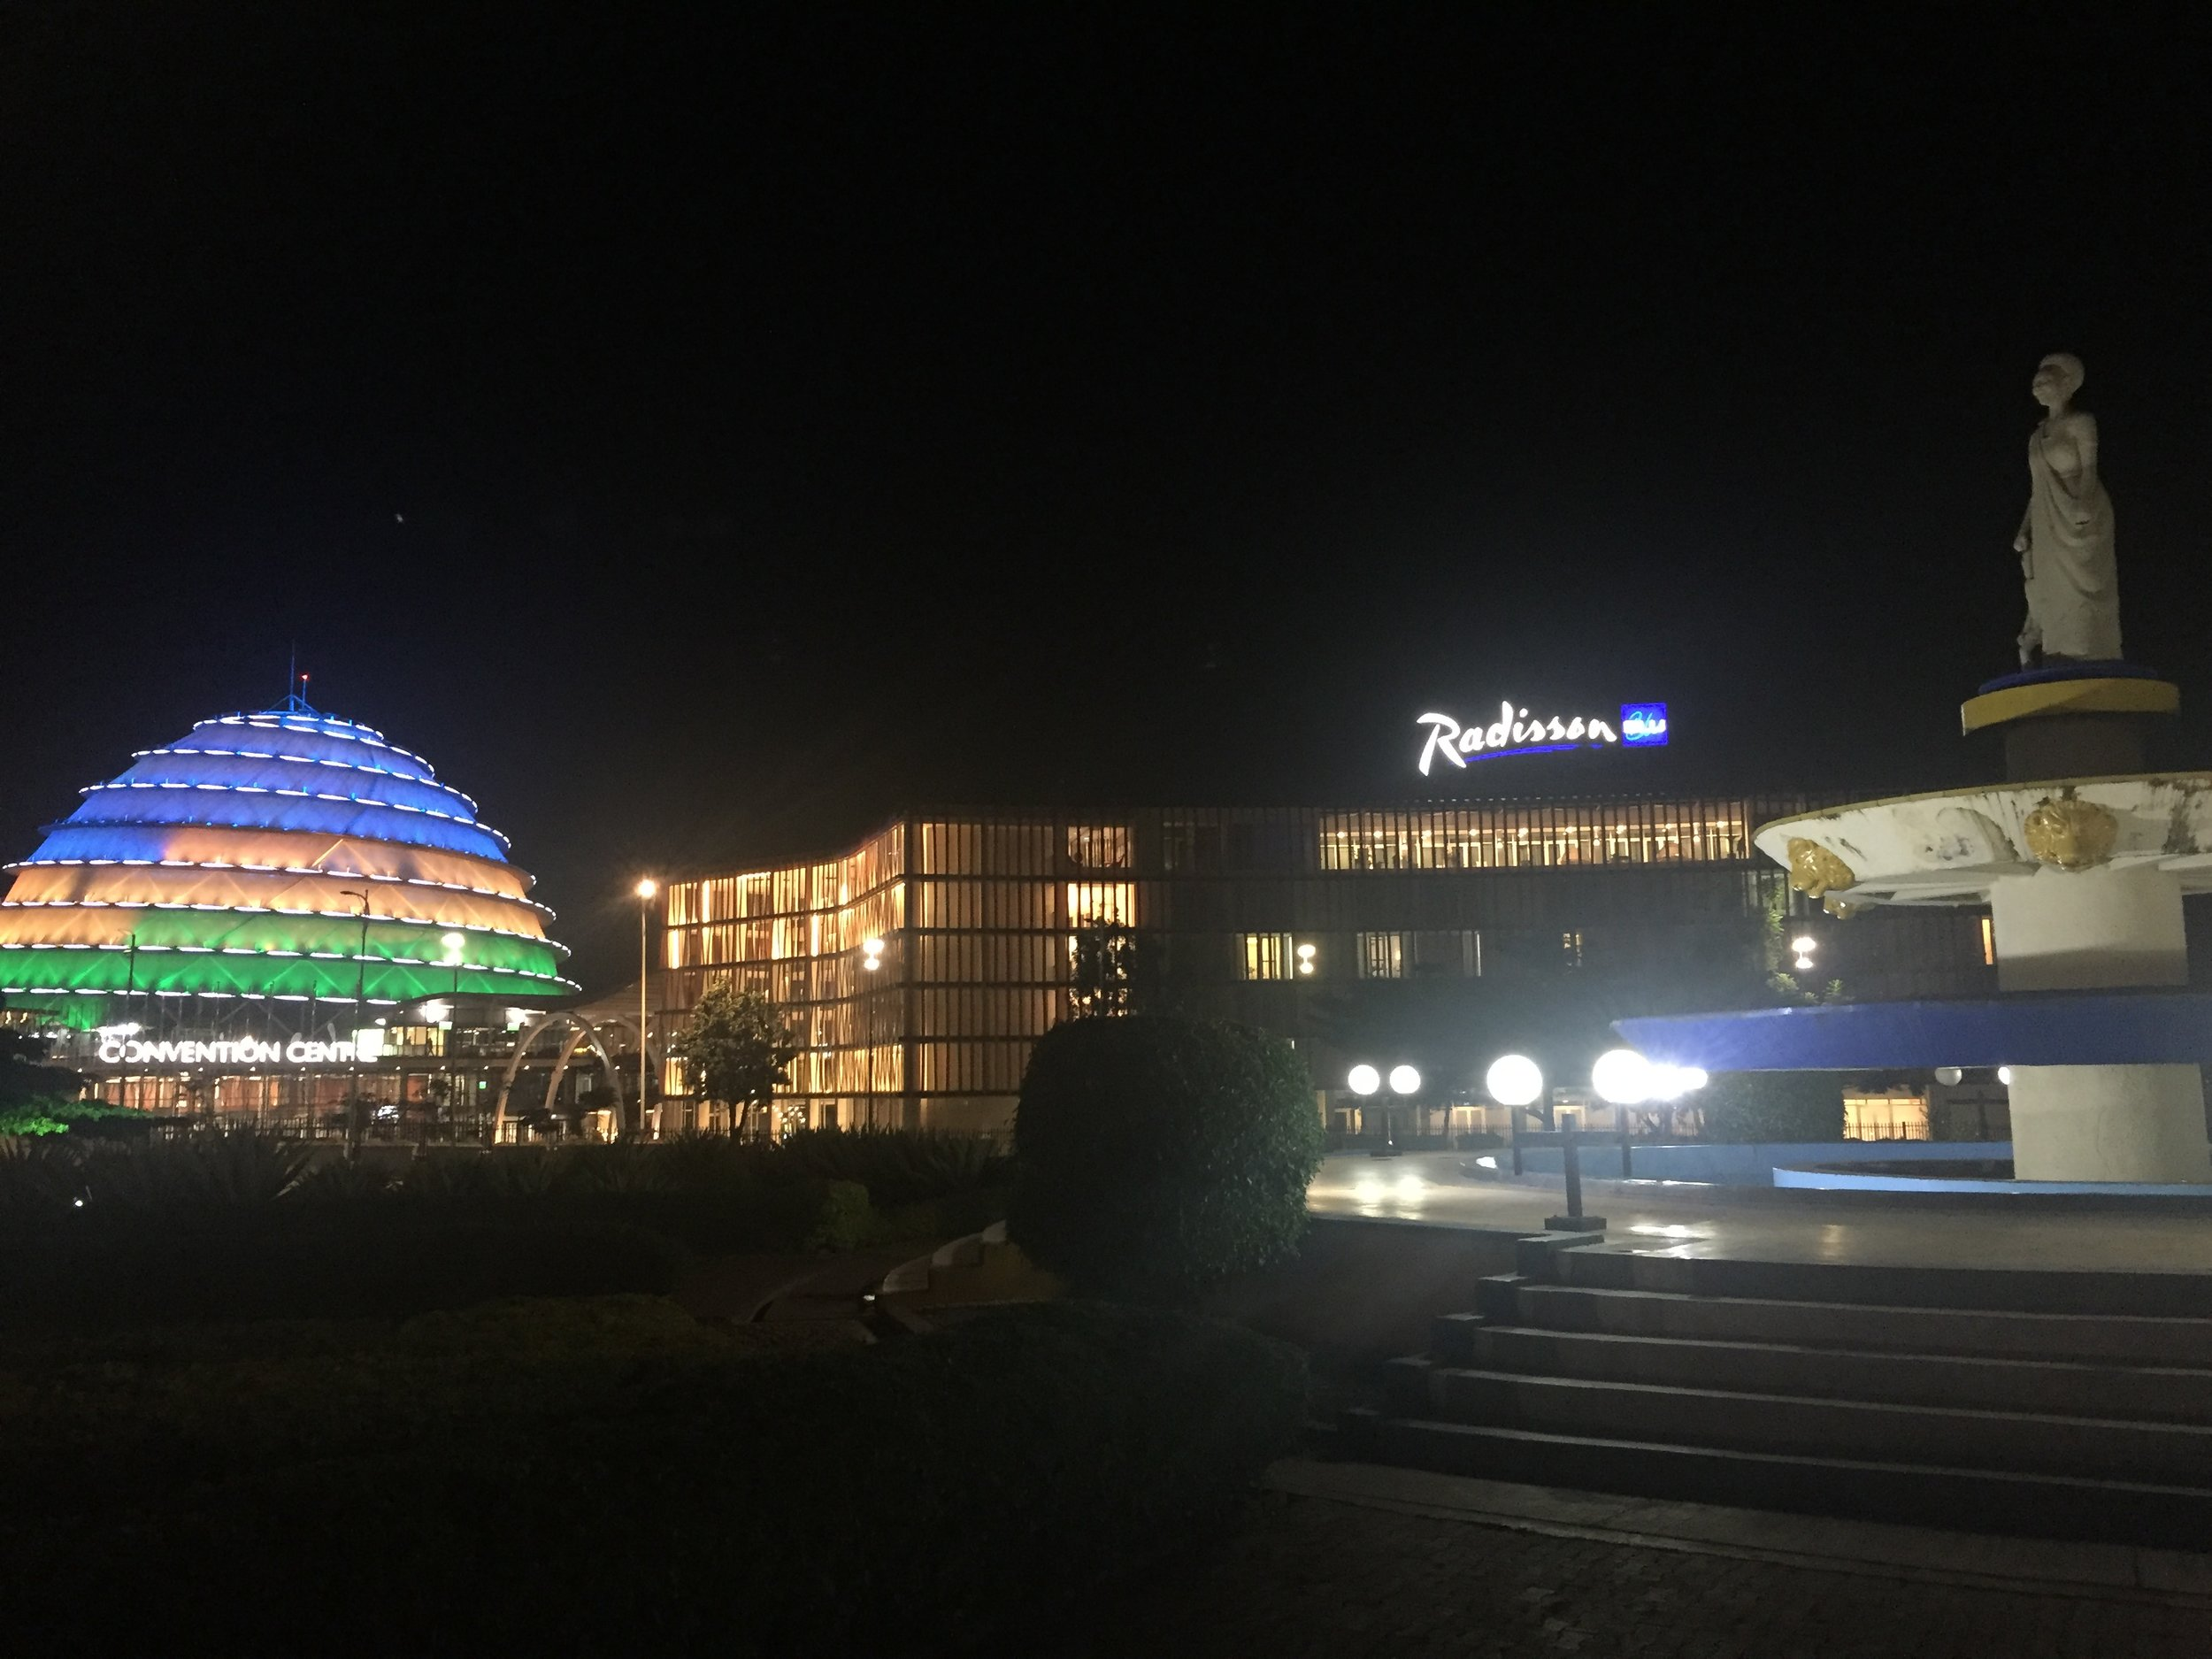 Kigali Convention Centre and Radisson Blue Hotel | The Ajala Bug